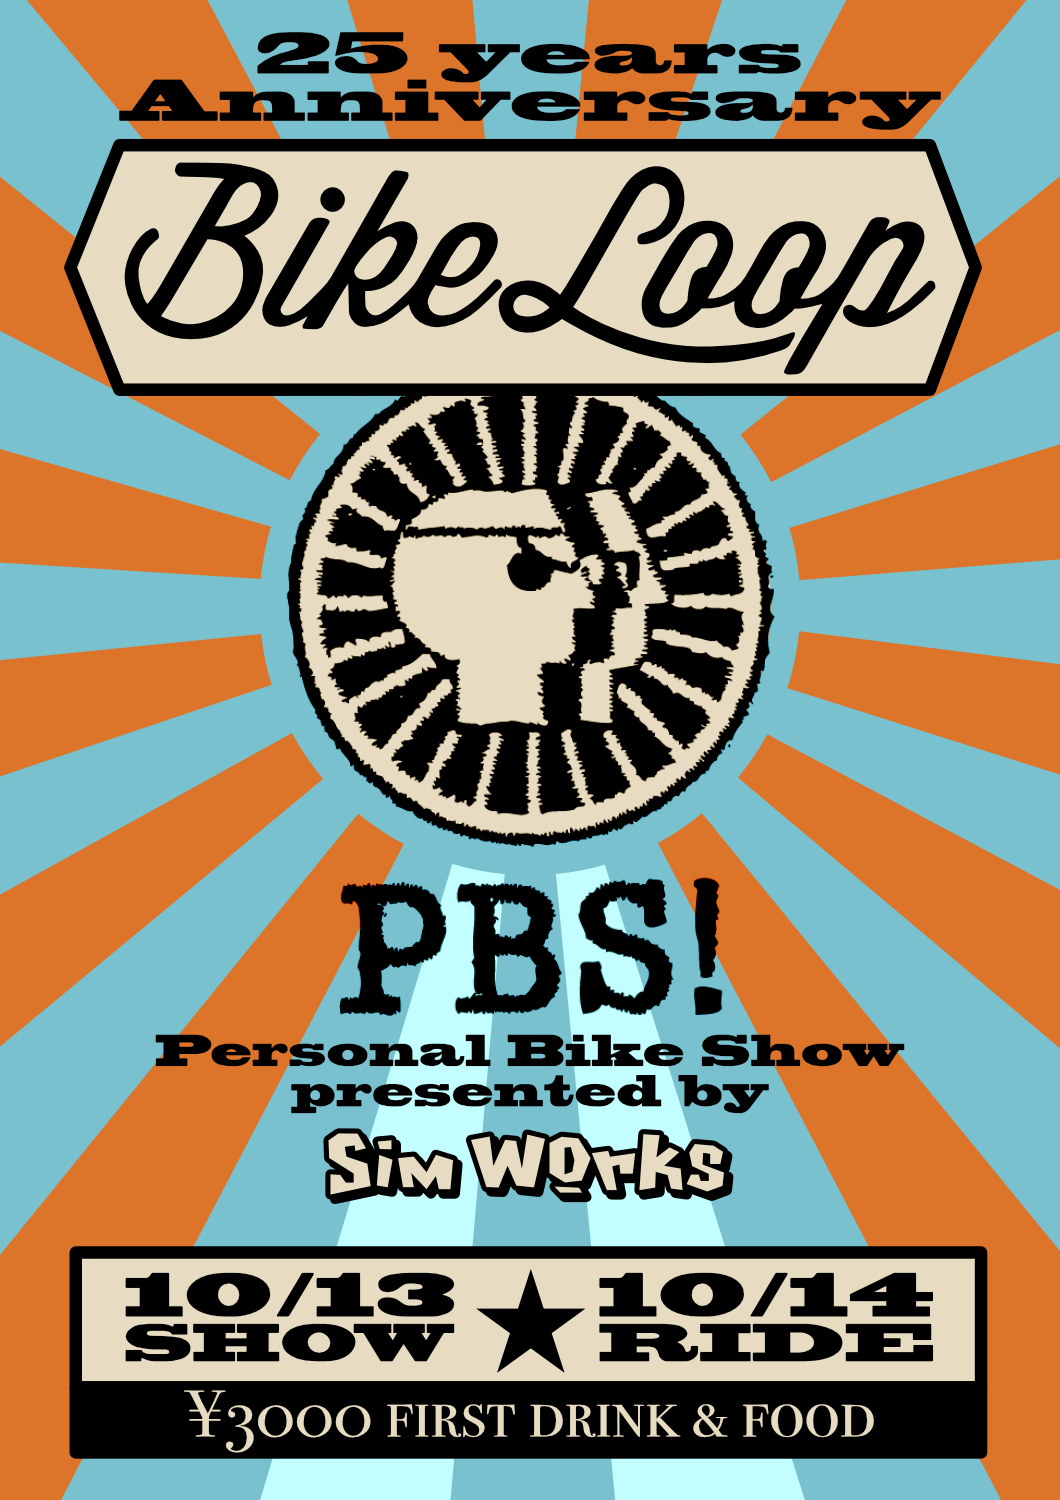 PBS x Bike Loop 25th Anniv. Party!